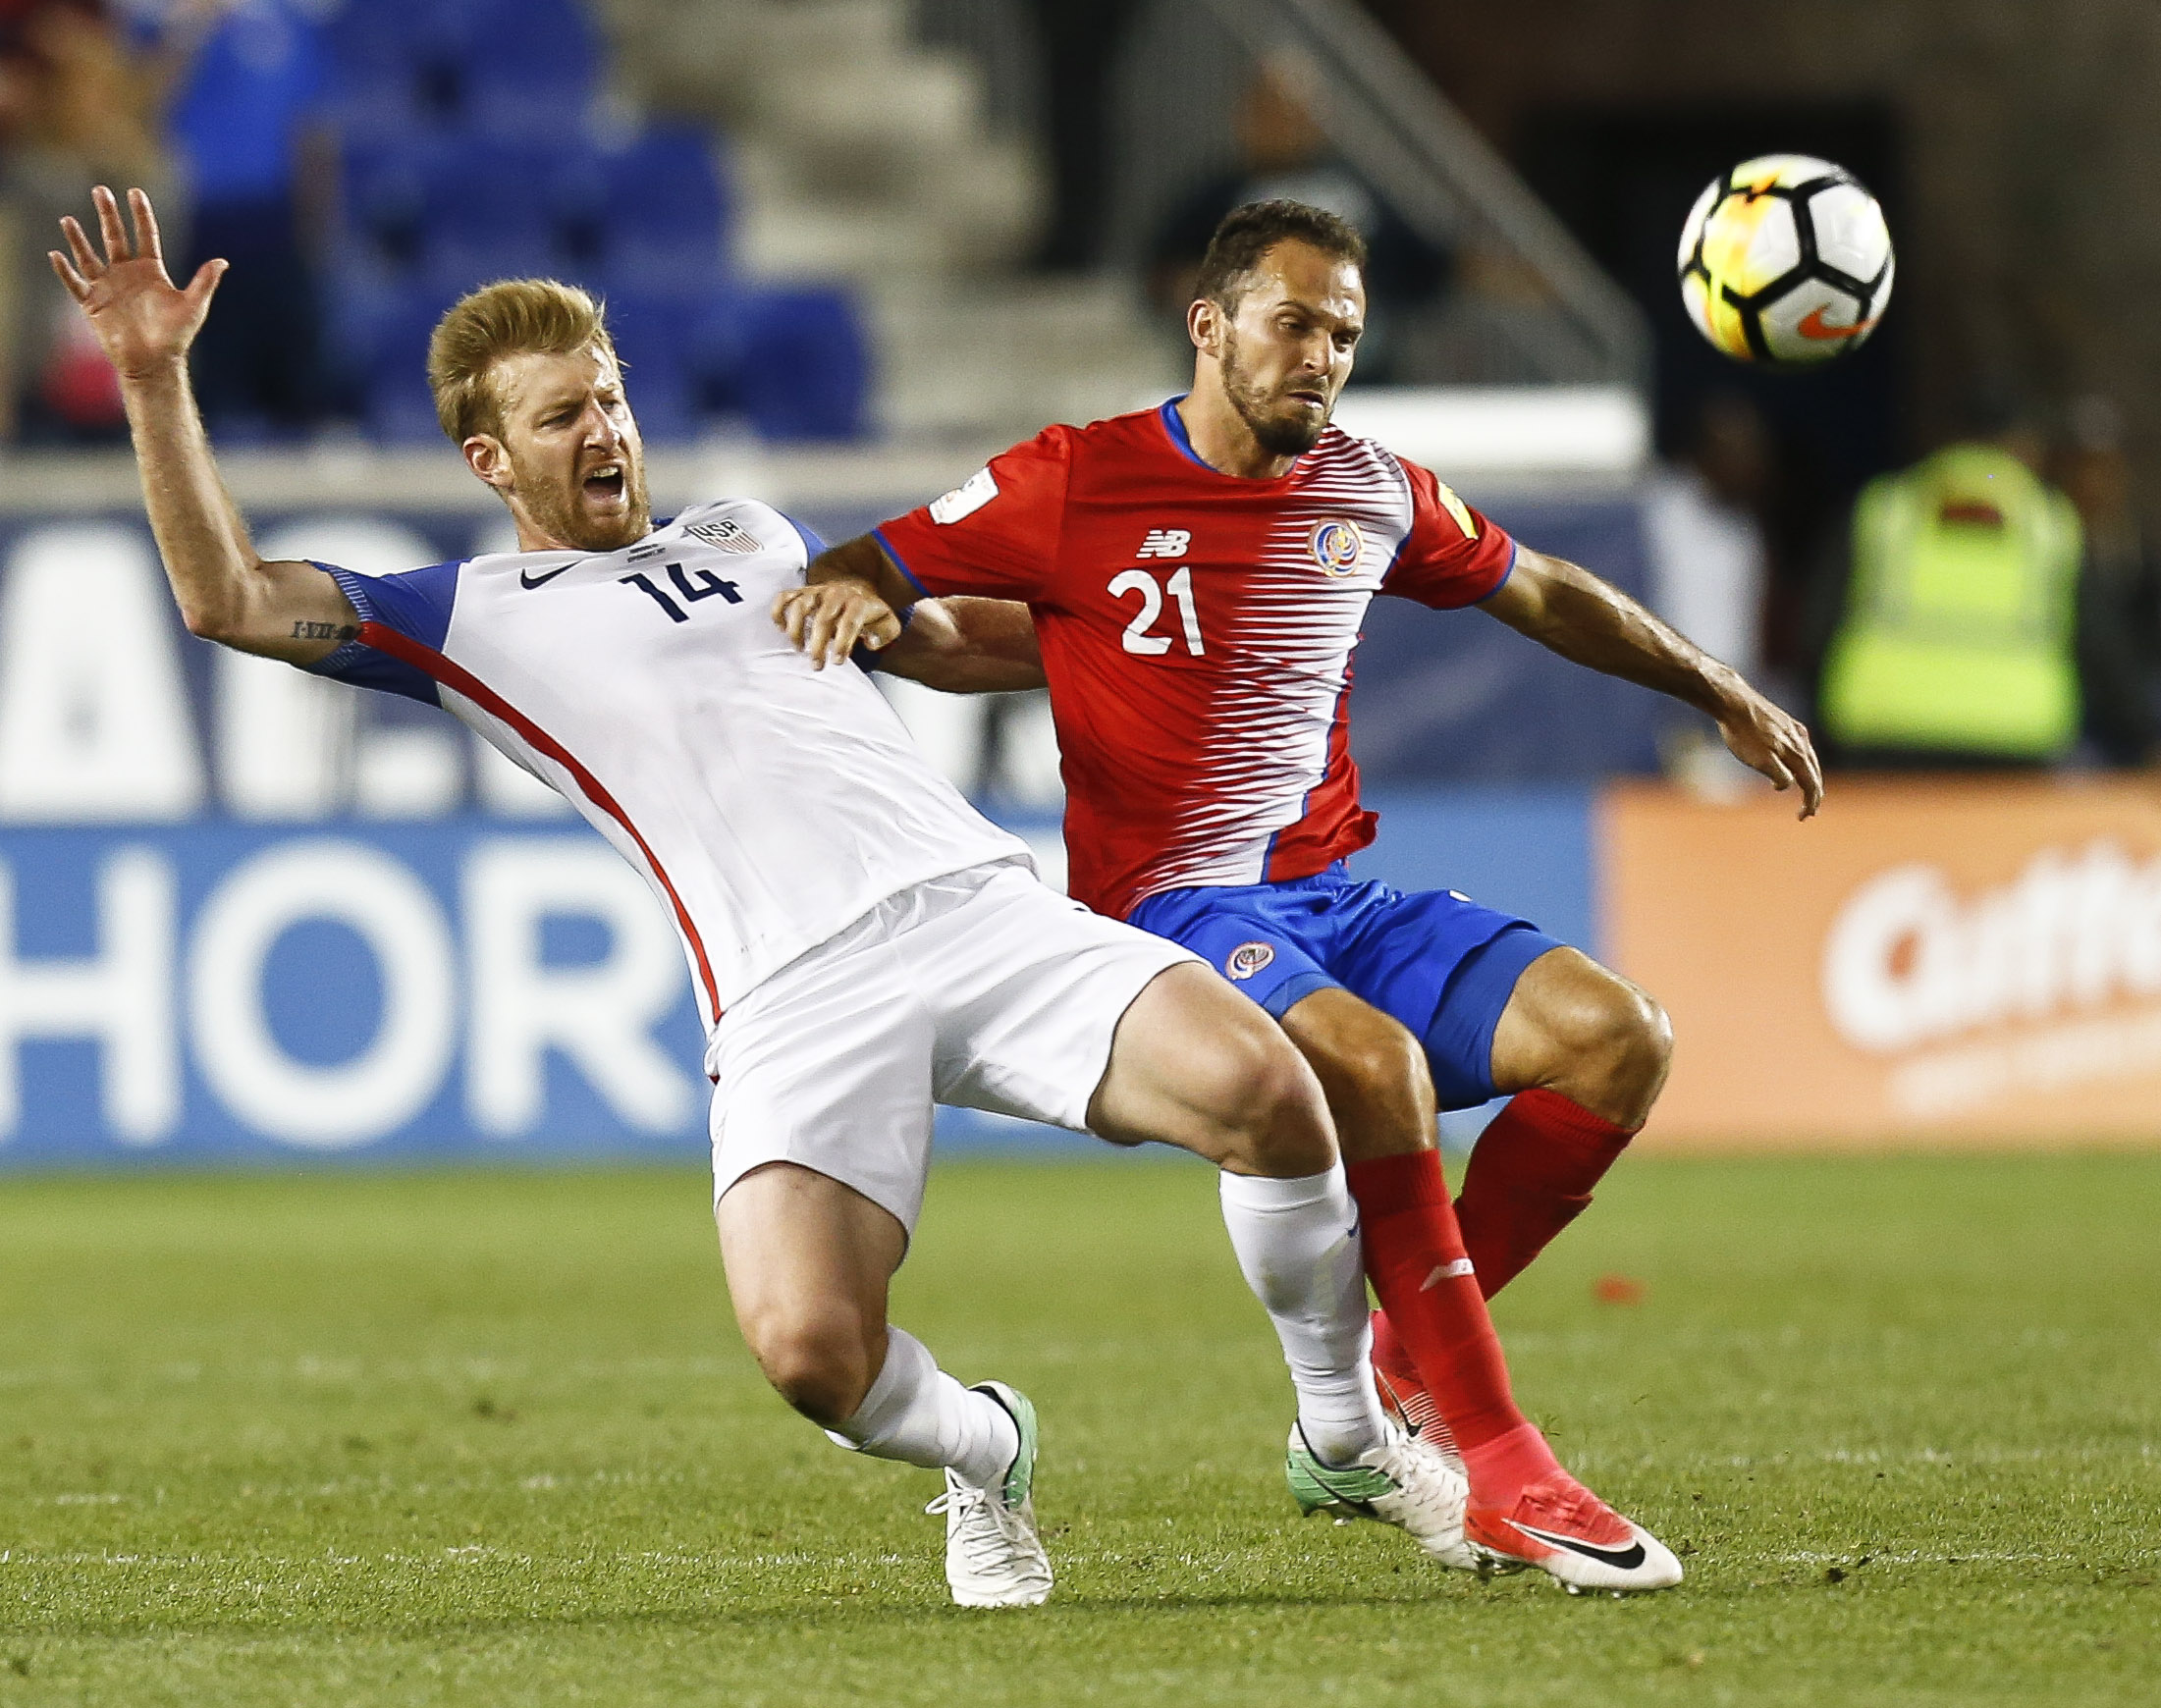 edb2c94a26a Why has the USMNT struggled during World Cup qualifying